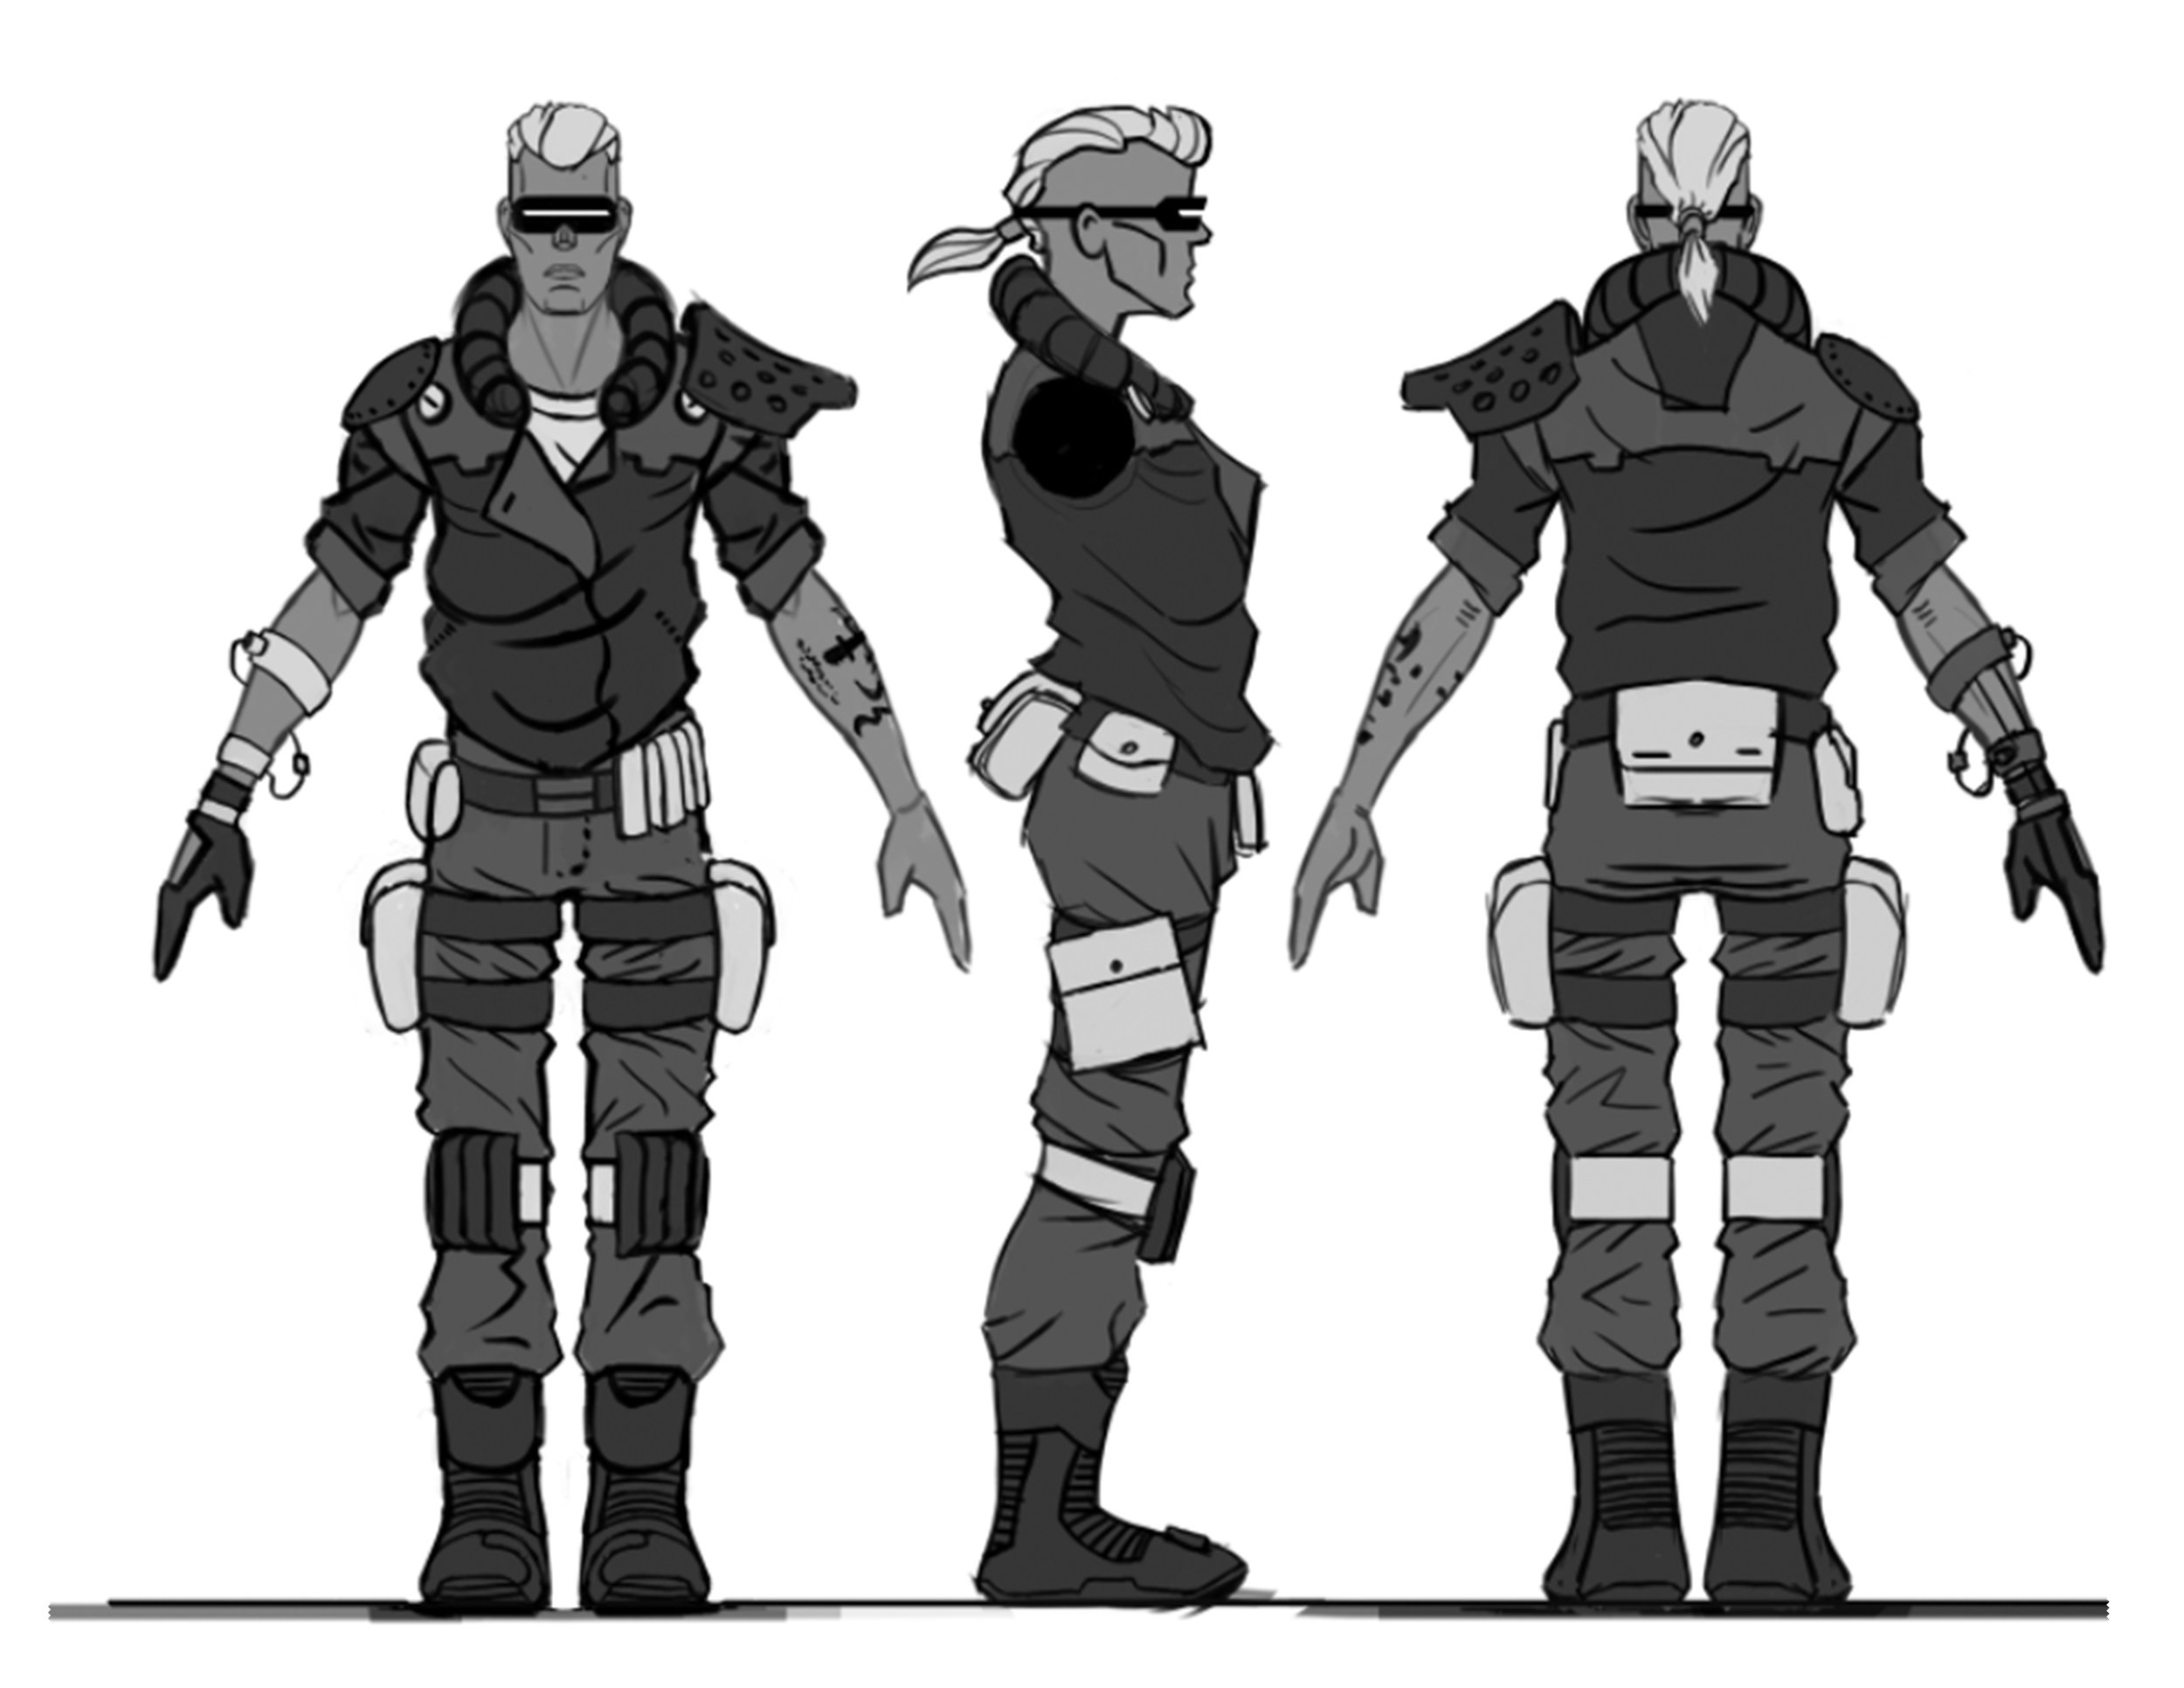 2018_dueprocess_character_concepts2.jpg